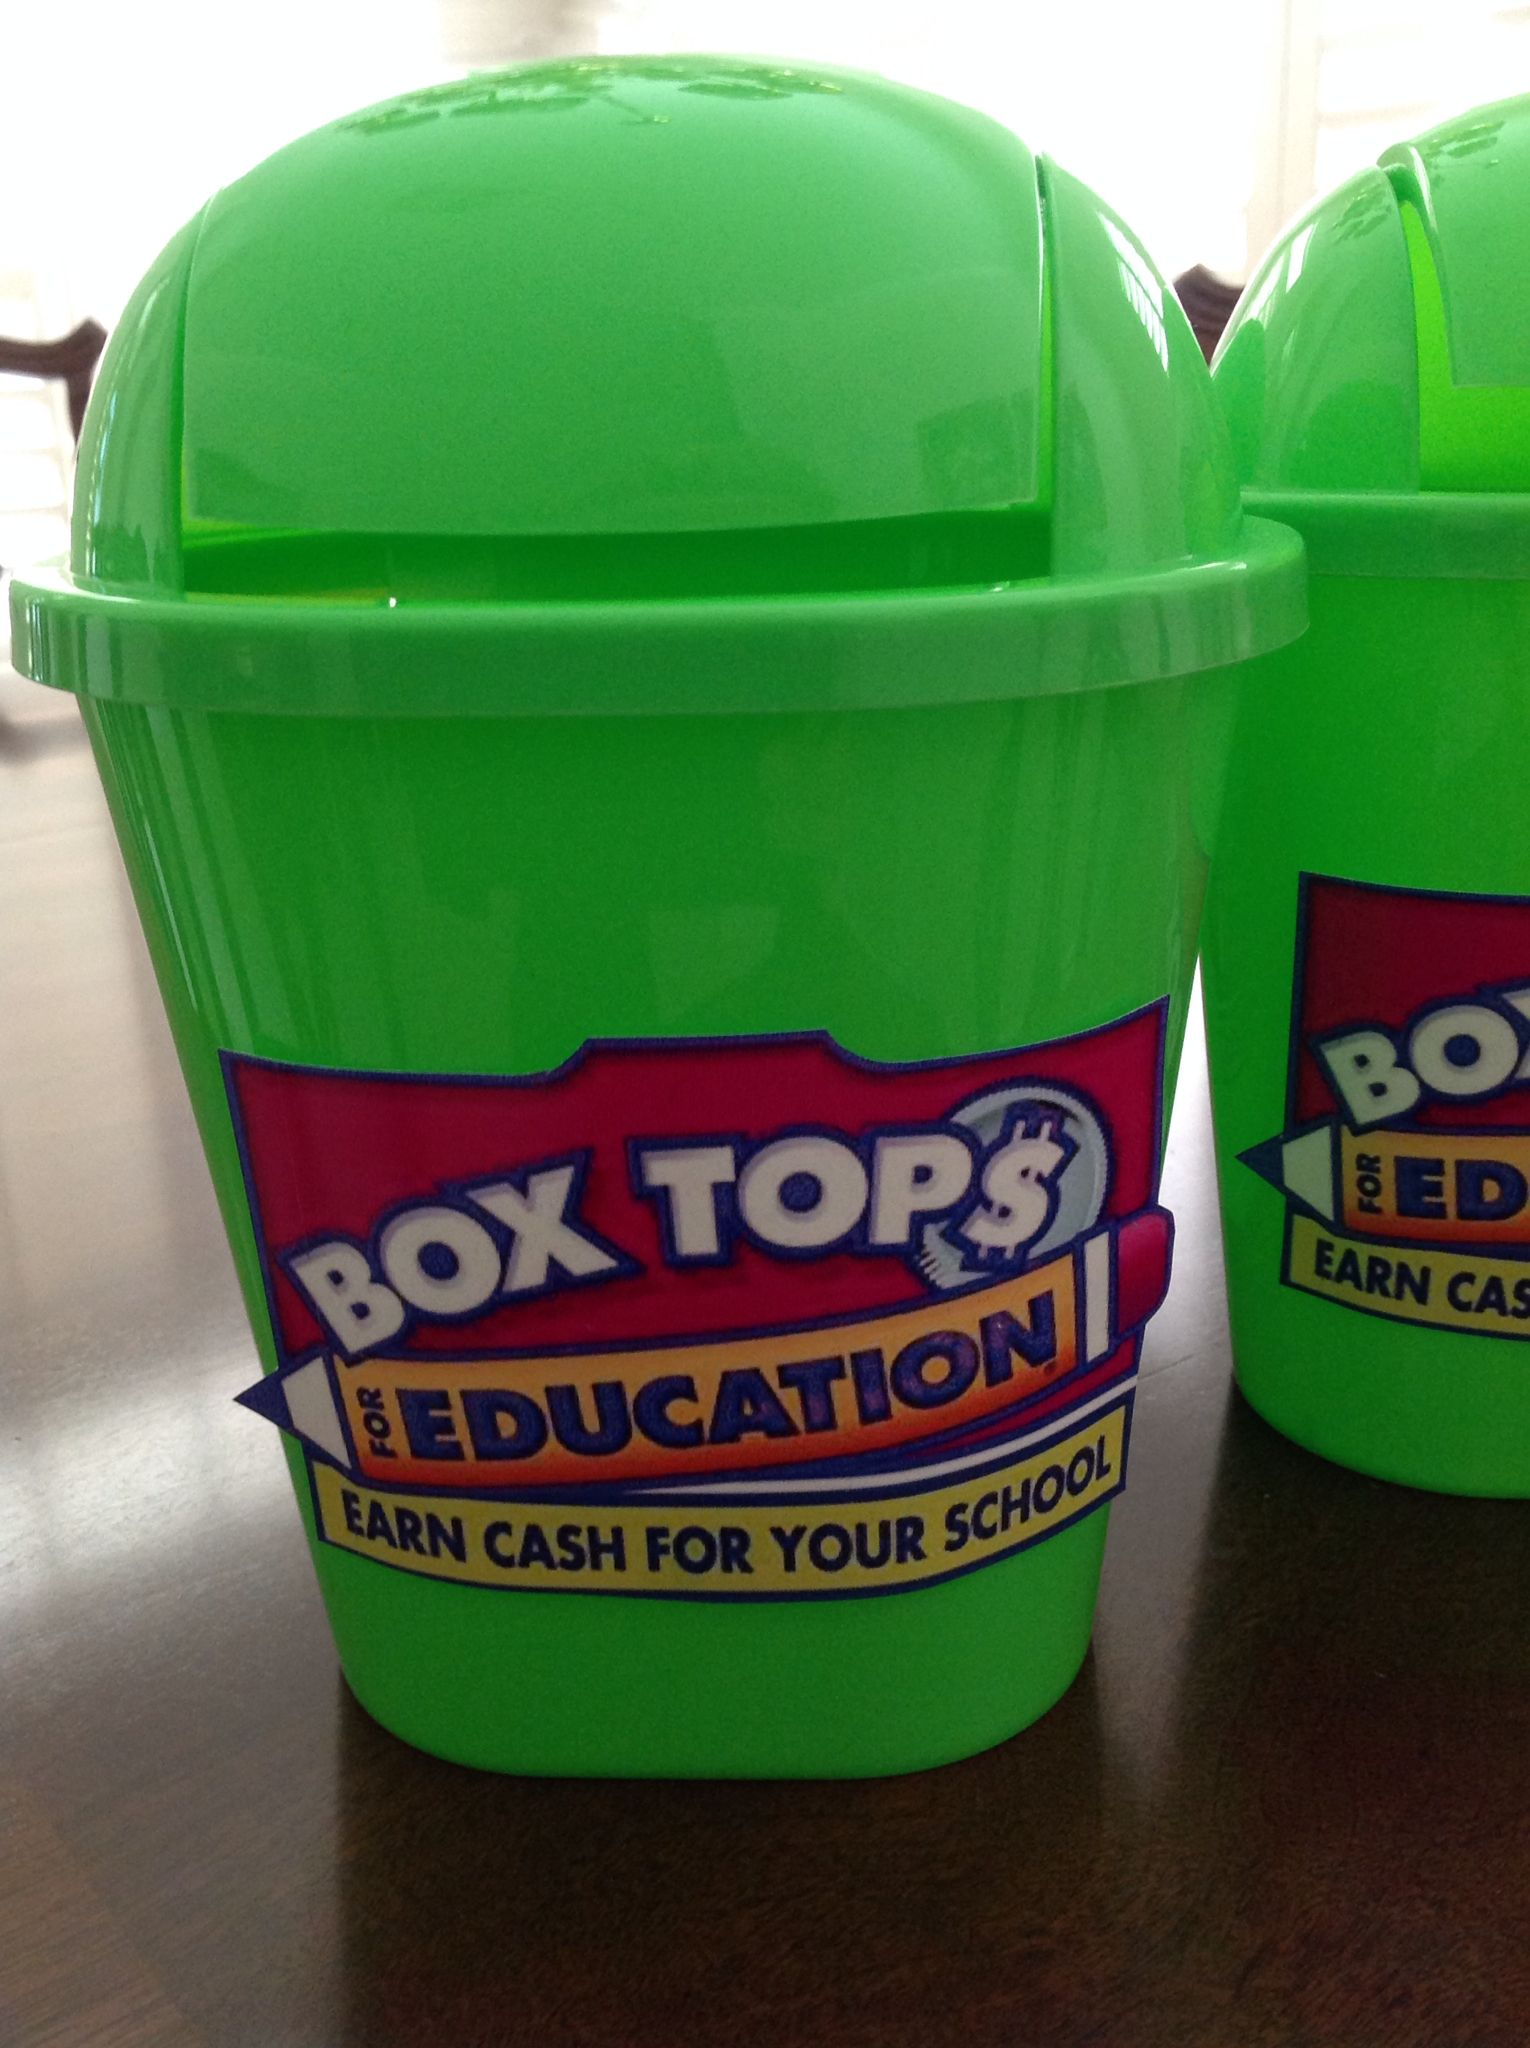 Dollar Tree Mini Trashcan For Box Tops Collection In The Classroom